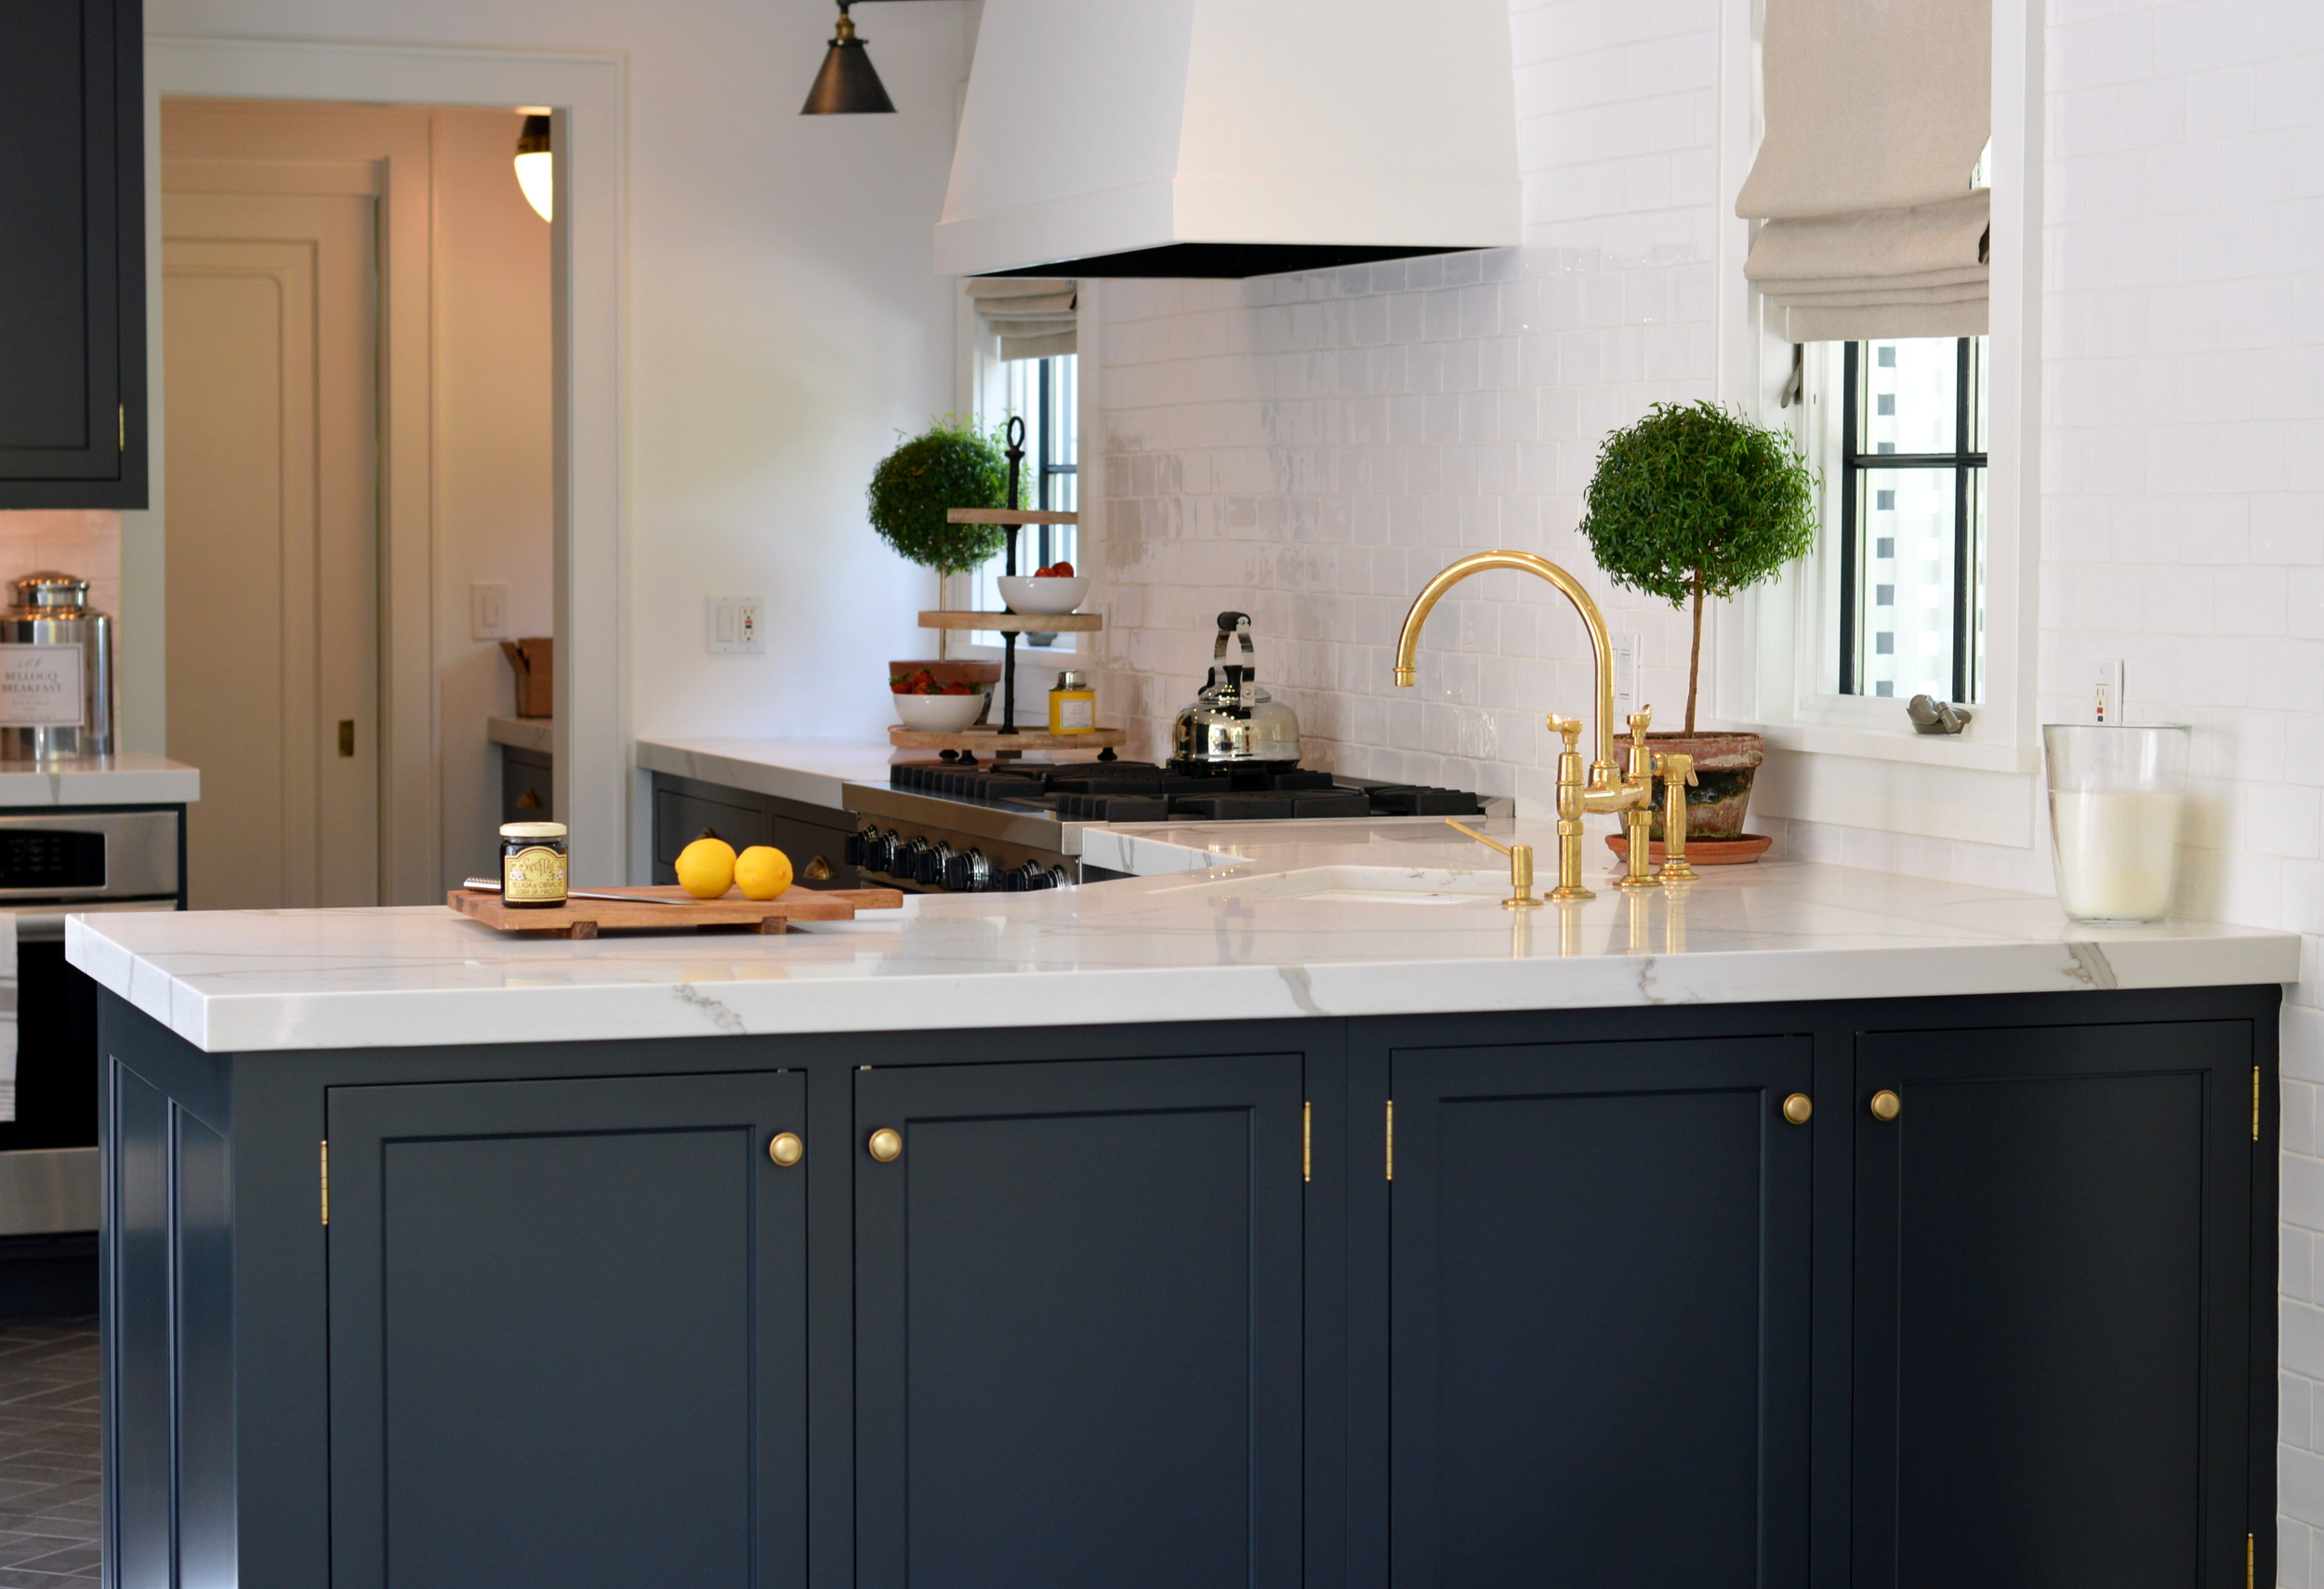 Off Black Custom Kitchen Cabinet Remodel - Intervale Place, Greenwich CT